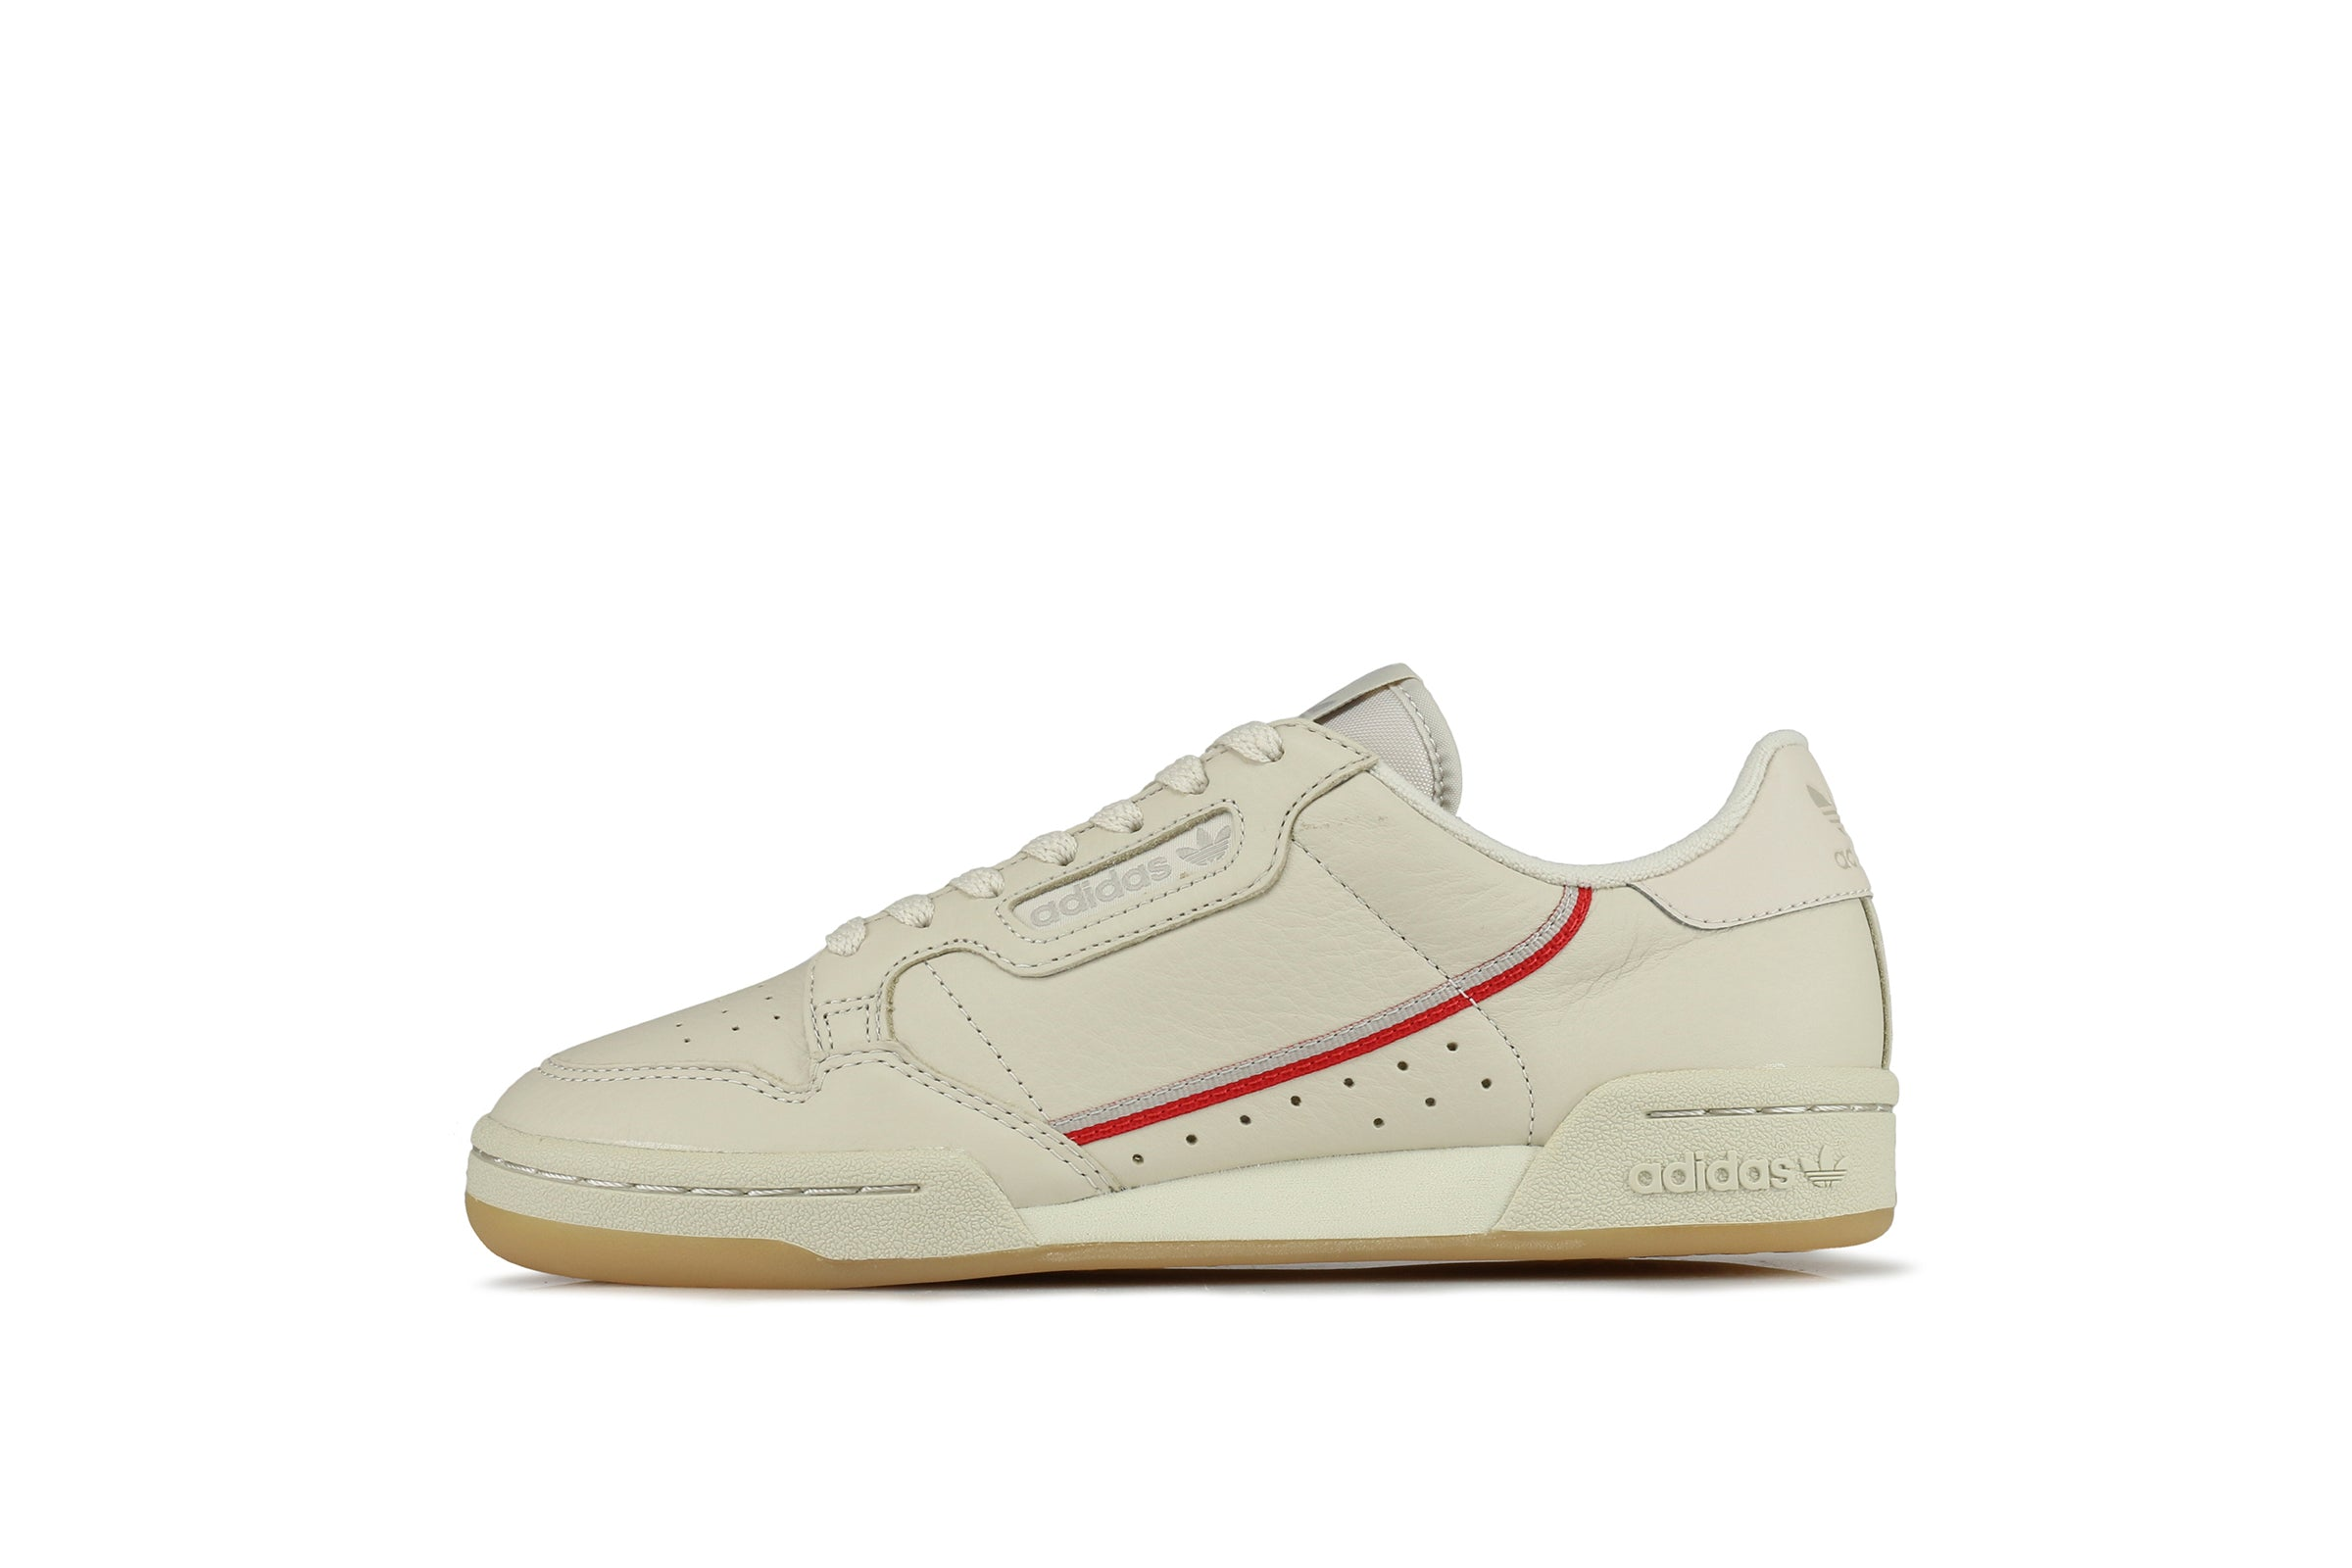 375c057be9c0 Adidas Continental 80